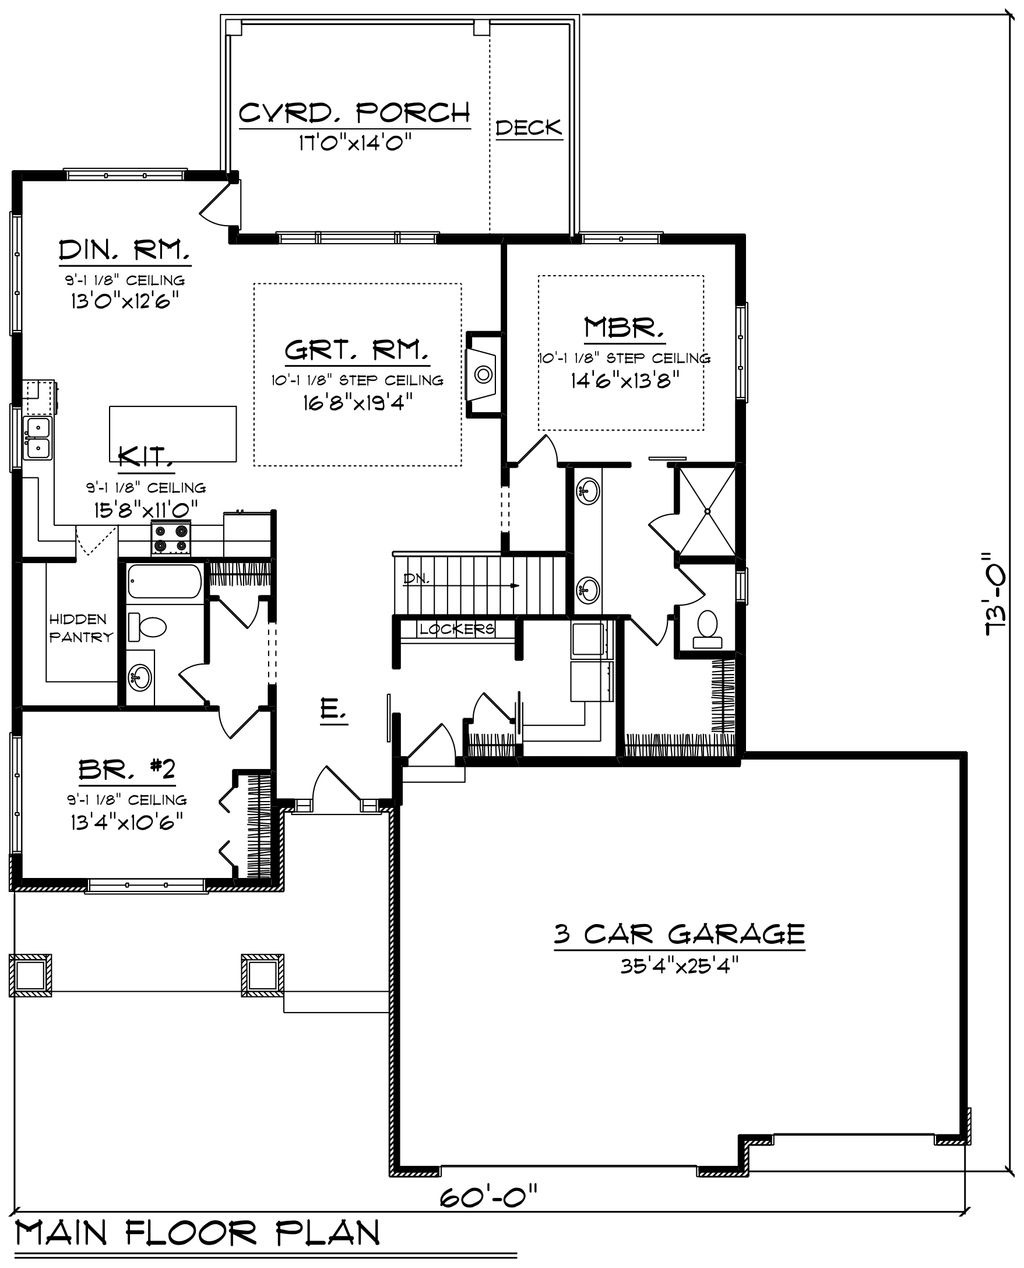 House Plans Ranch Style with Basement Awesome Ranch Style House Plan 2 Beds 2 Baths 1736 Sq Ft Plan 70